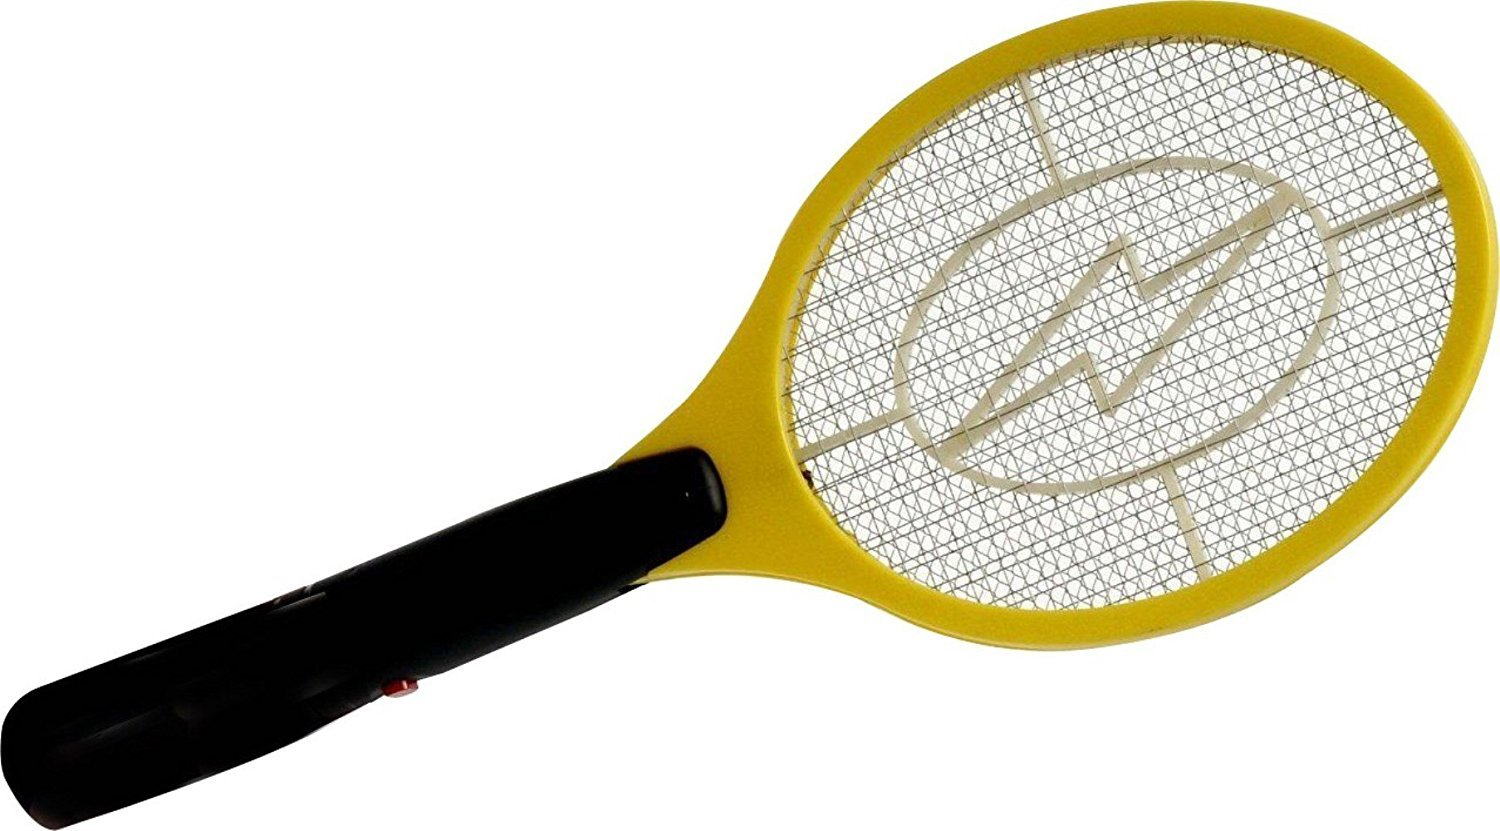 Mosquito Racket Buy Bats Online At Best Prices In India Electronic Insect Killer Circuit Diagram Home Cube Flys Ora 07 Rechargeable Flies Trap Bat